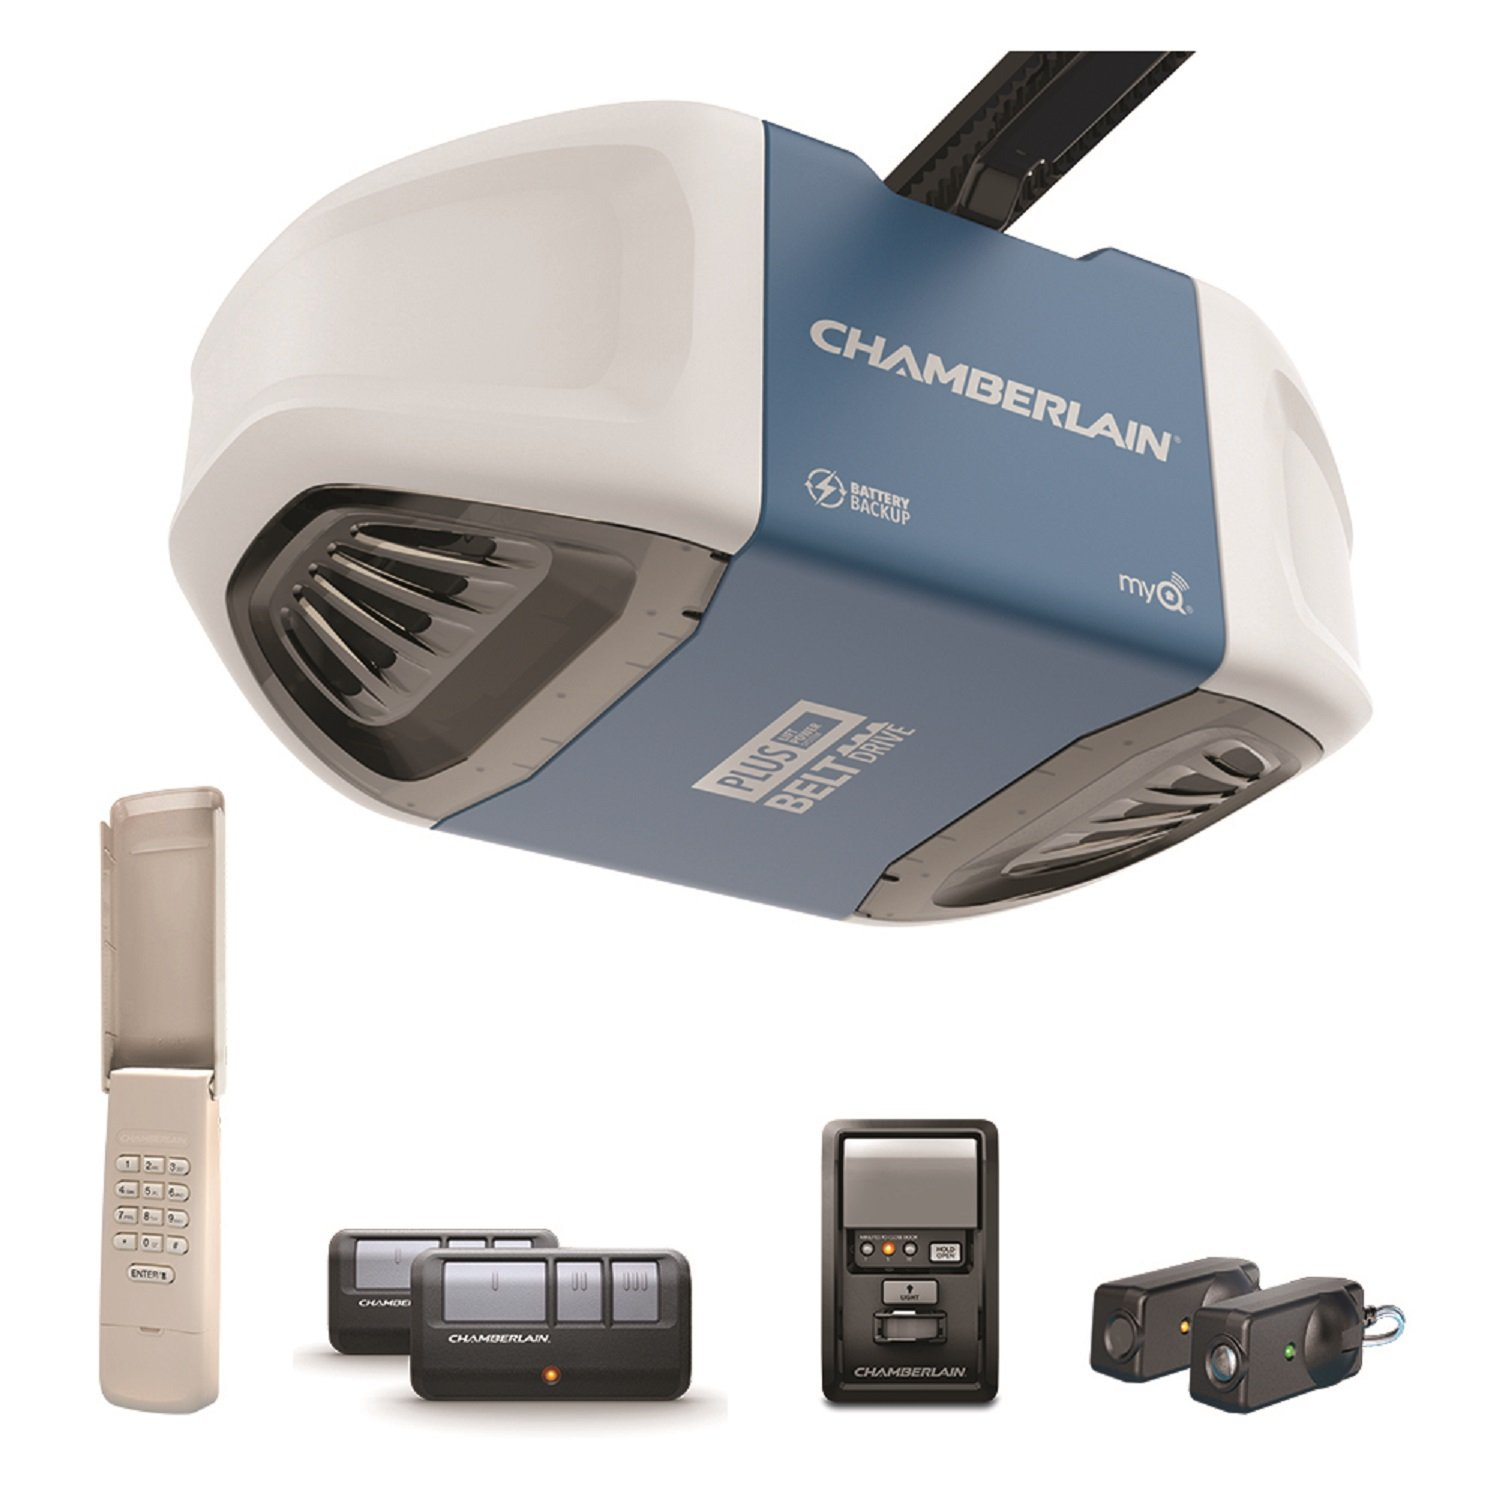 garage is opener drive dc contractor series chain smartphone a discover the featuring myq door quiet app pin liftmaster connectivity